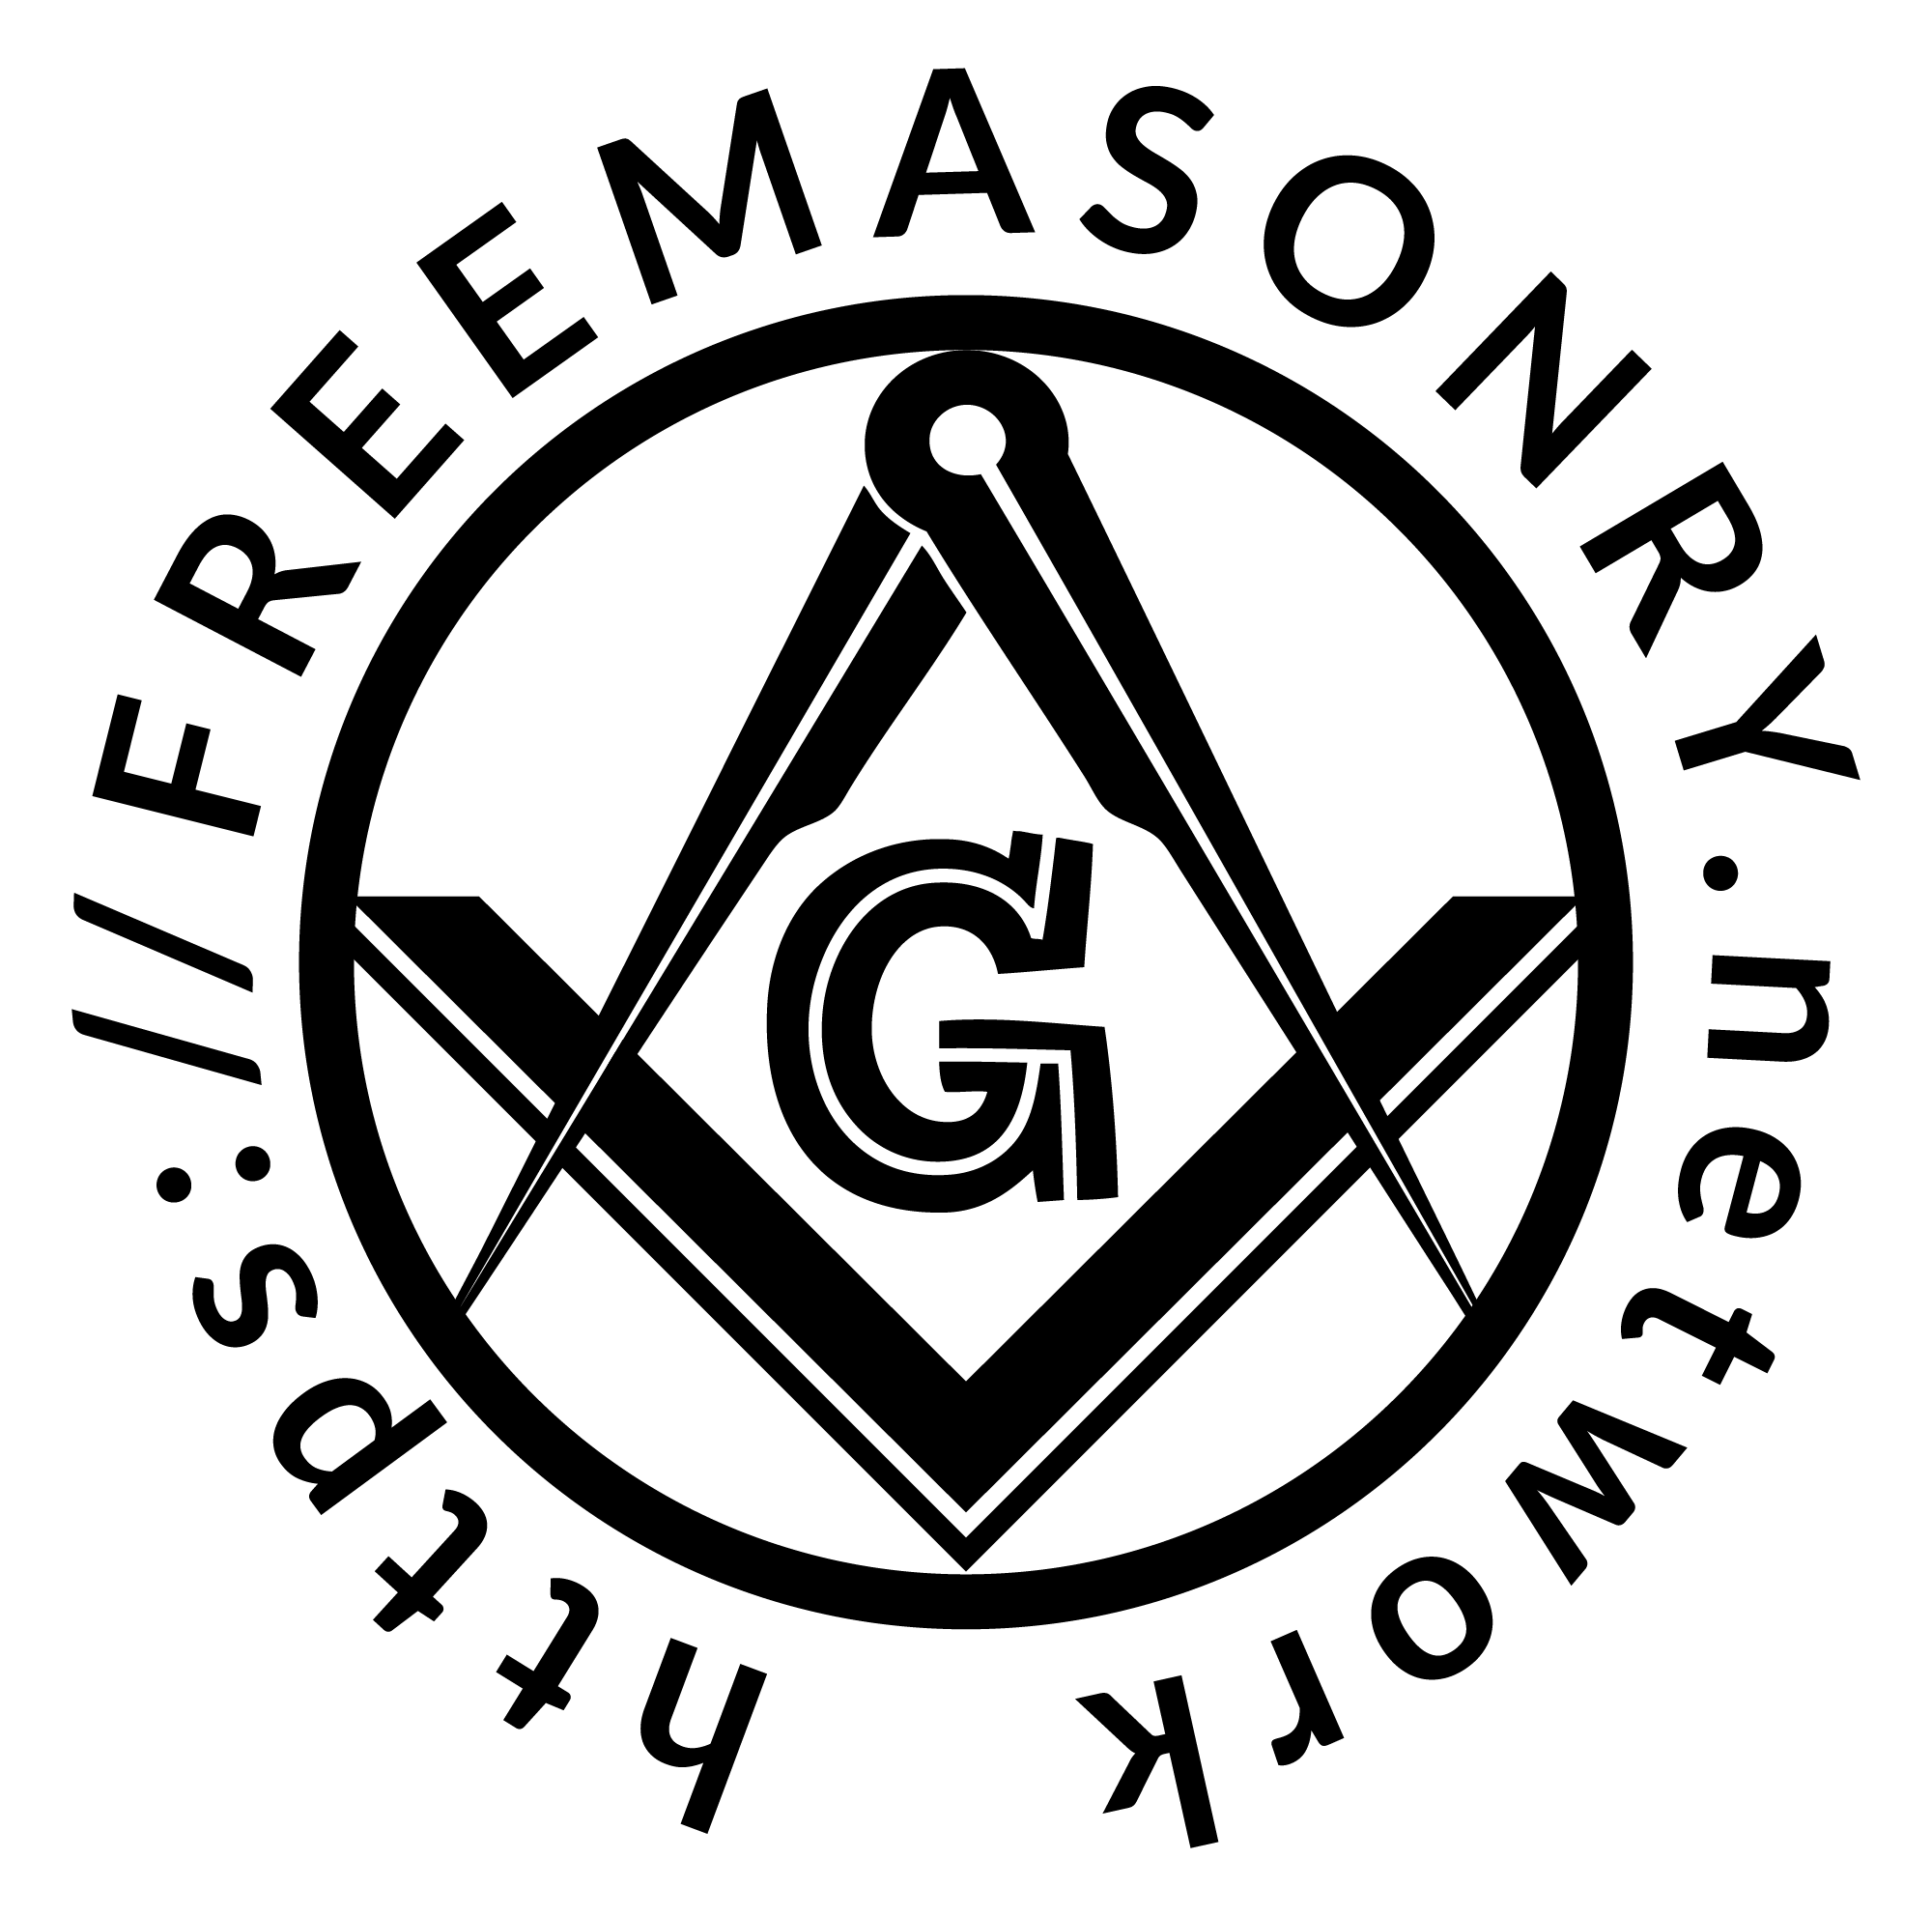 FREEMASONRY AND THE SCHOOL OF ALEXANDRIA